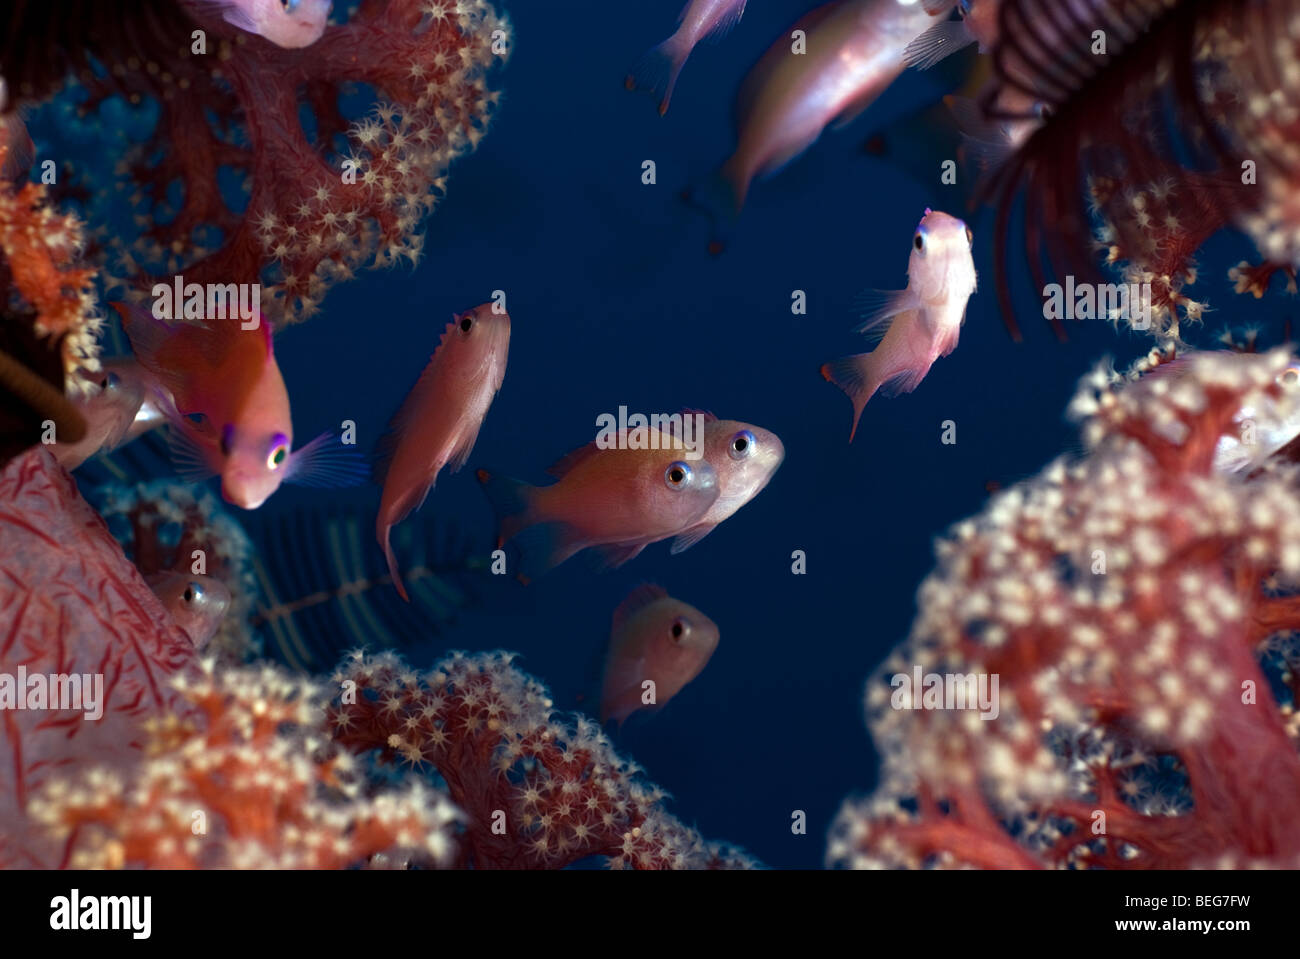 Stocky anthias among soft coral under water. - Stock Image